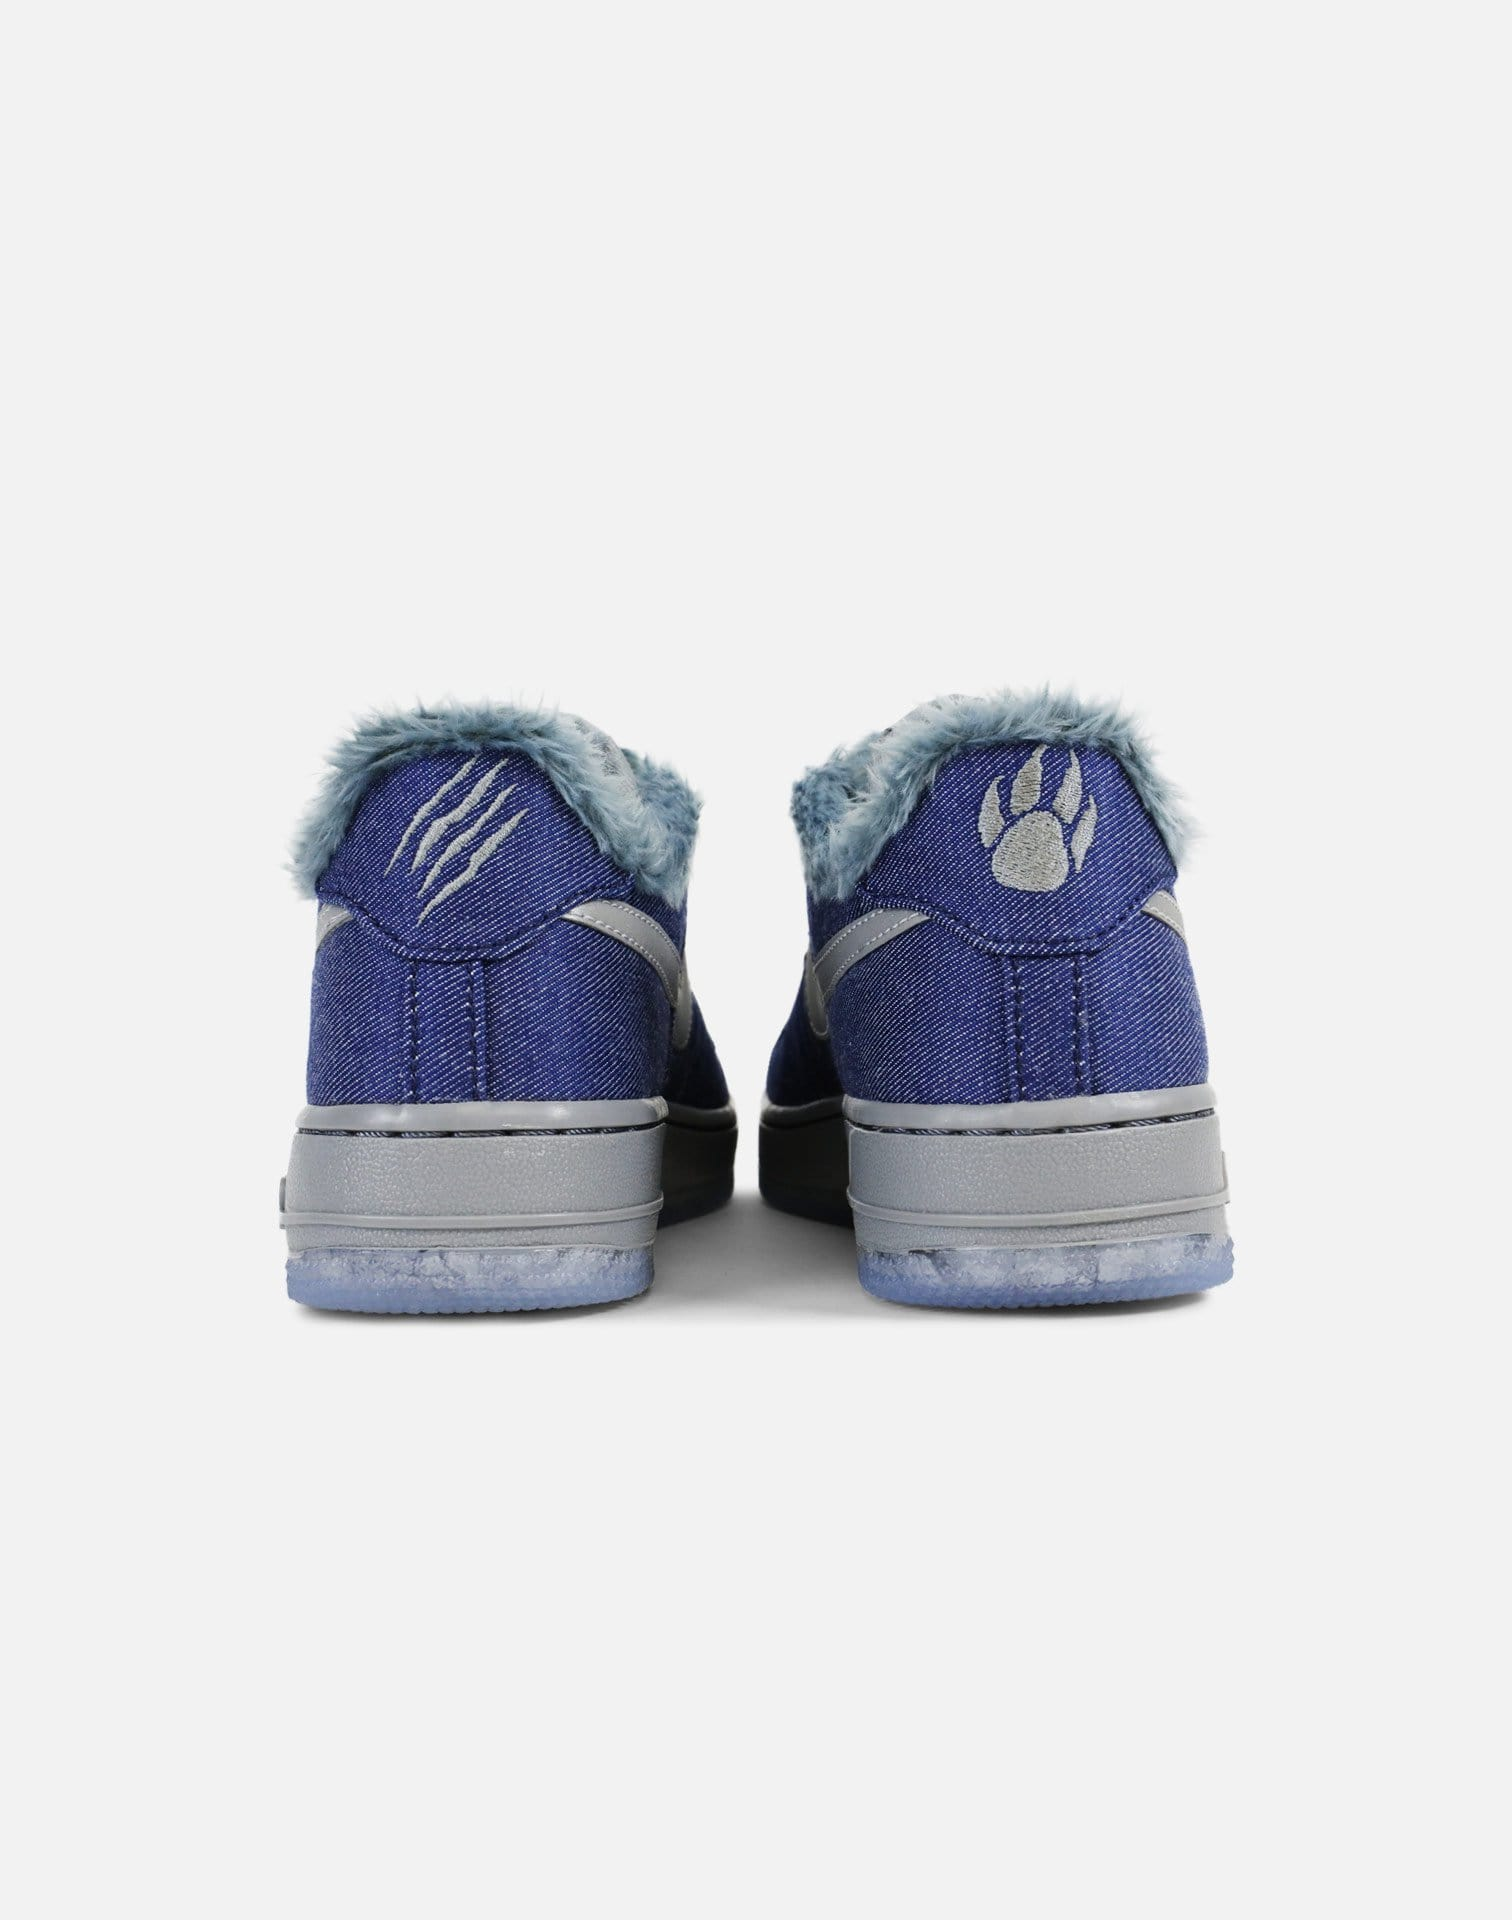 Nike Air Force 1 Low Pinnacle 'Werewolf' Grade-School (Denim/Wolf Grey-Ice Blue)